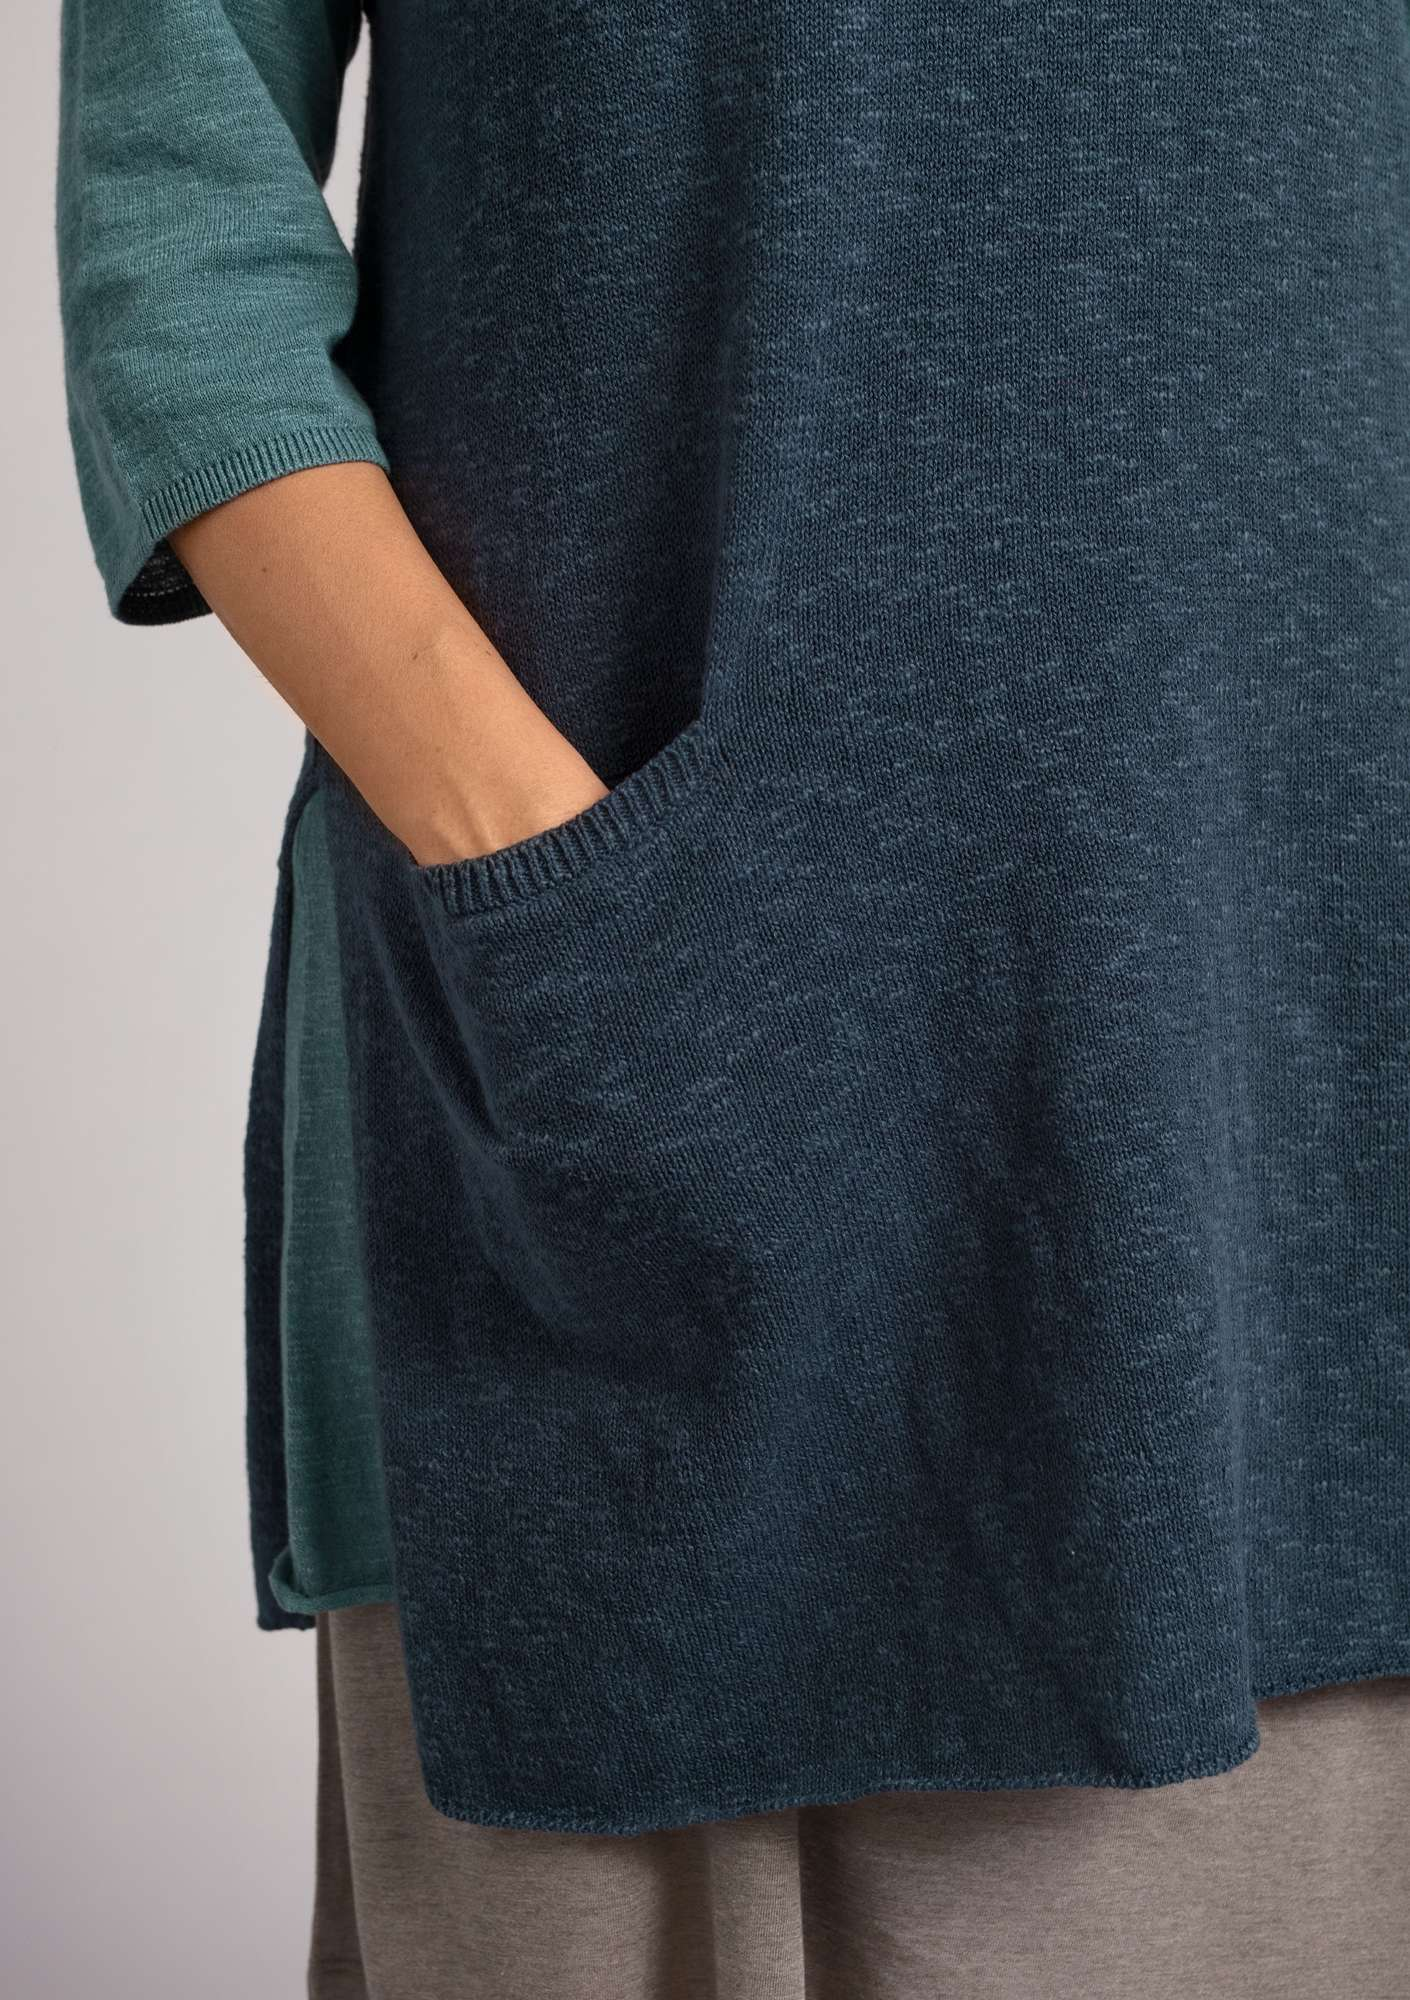 Sleeveless tunic in organic cotton/linen ink blue